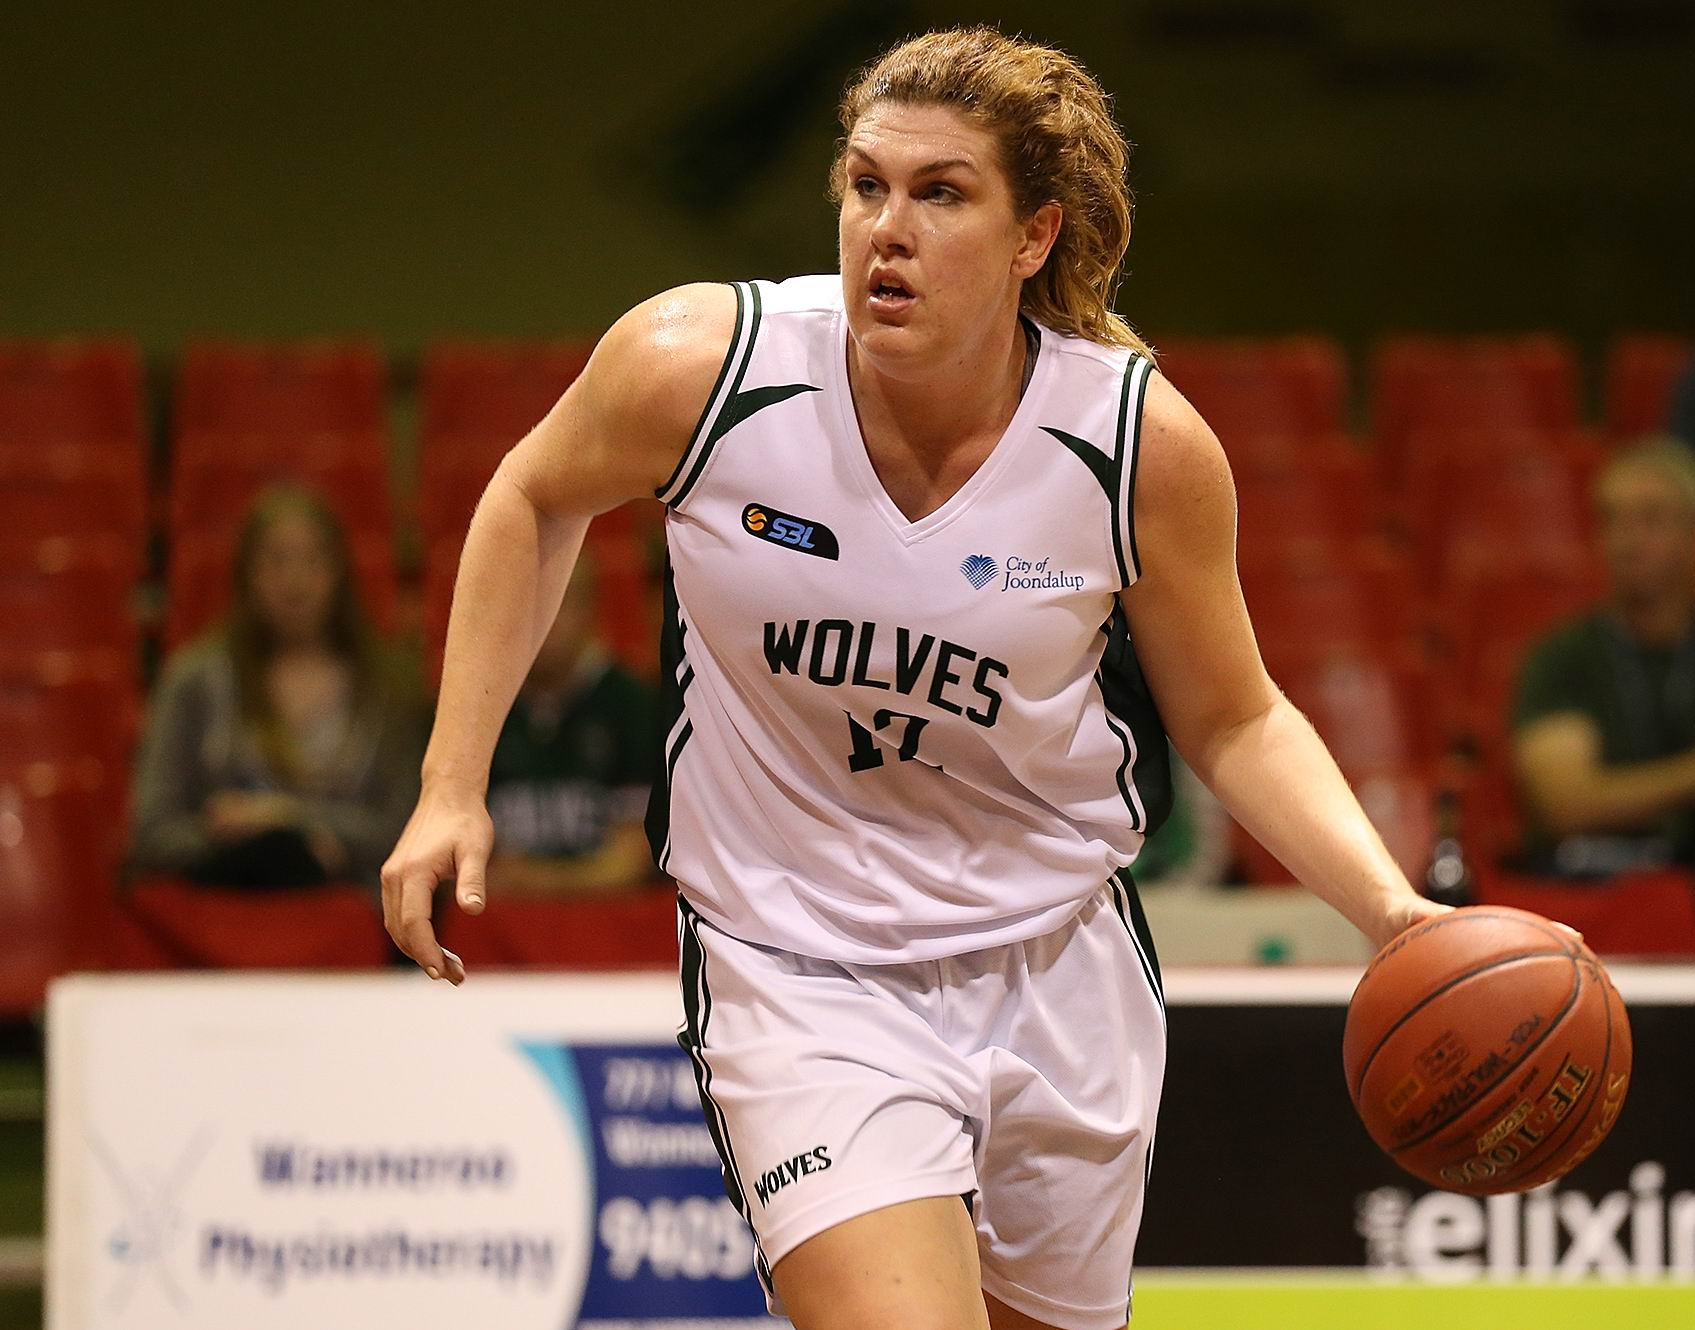 Ellyce Ironmonger dominated the rebound count. Picture: Michael Farnell, sportsimagery.com.au